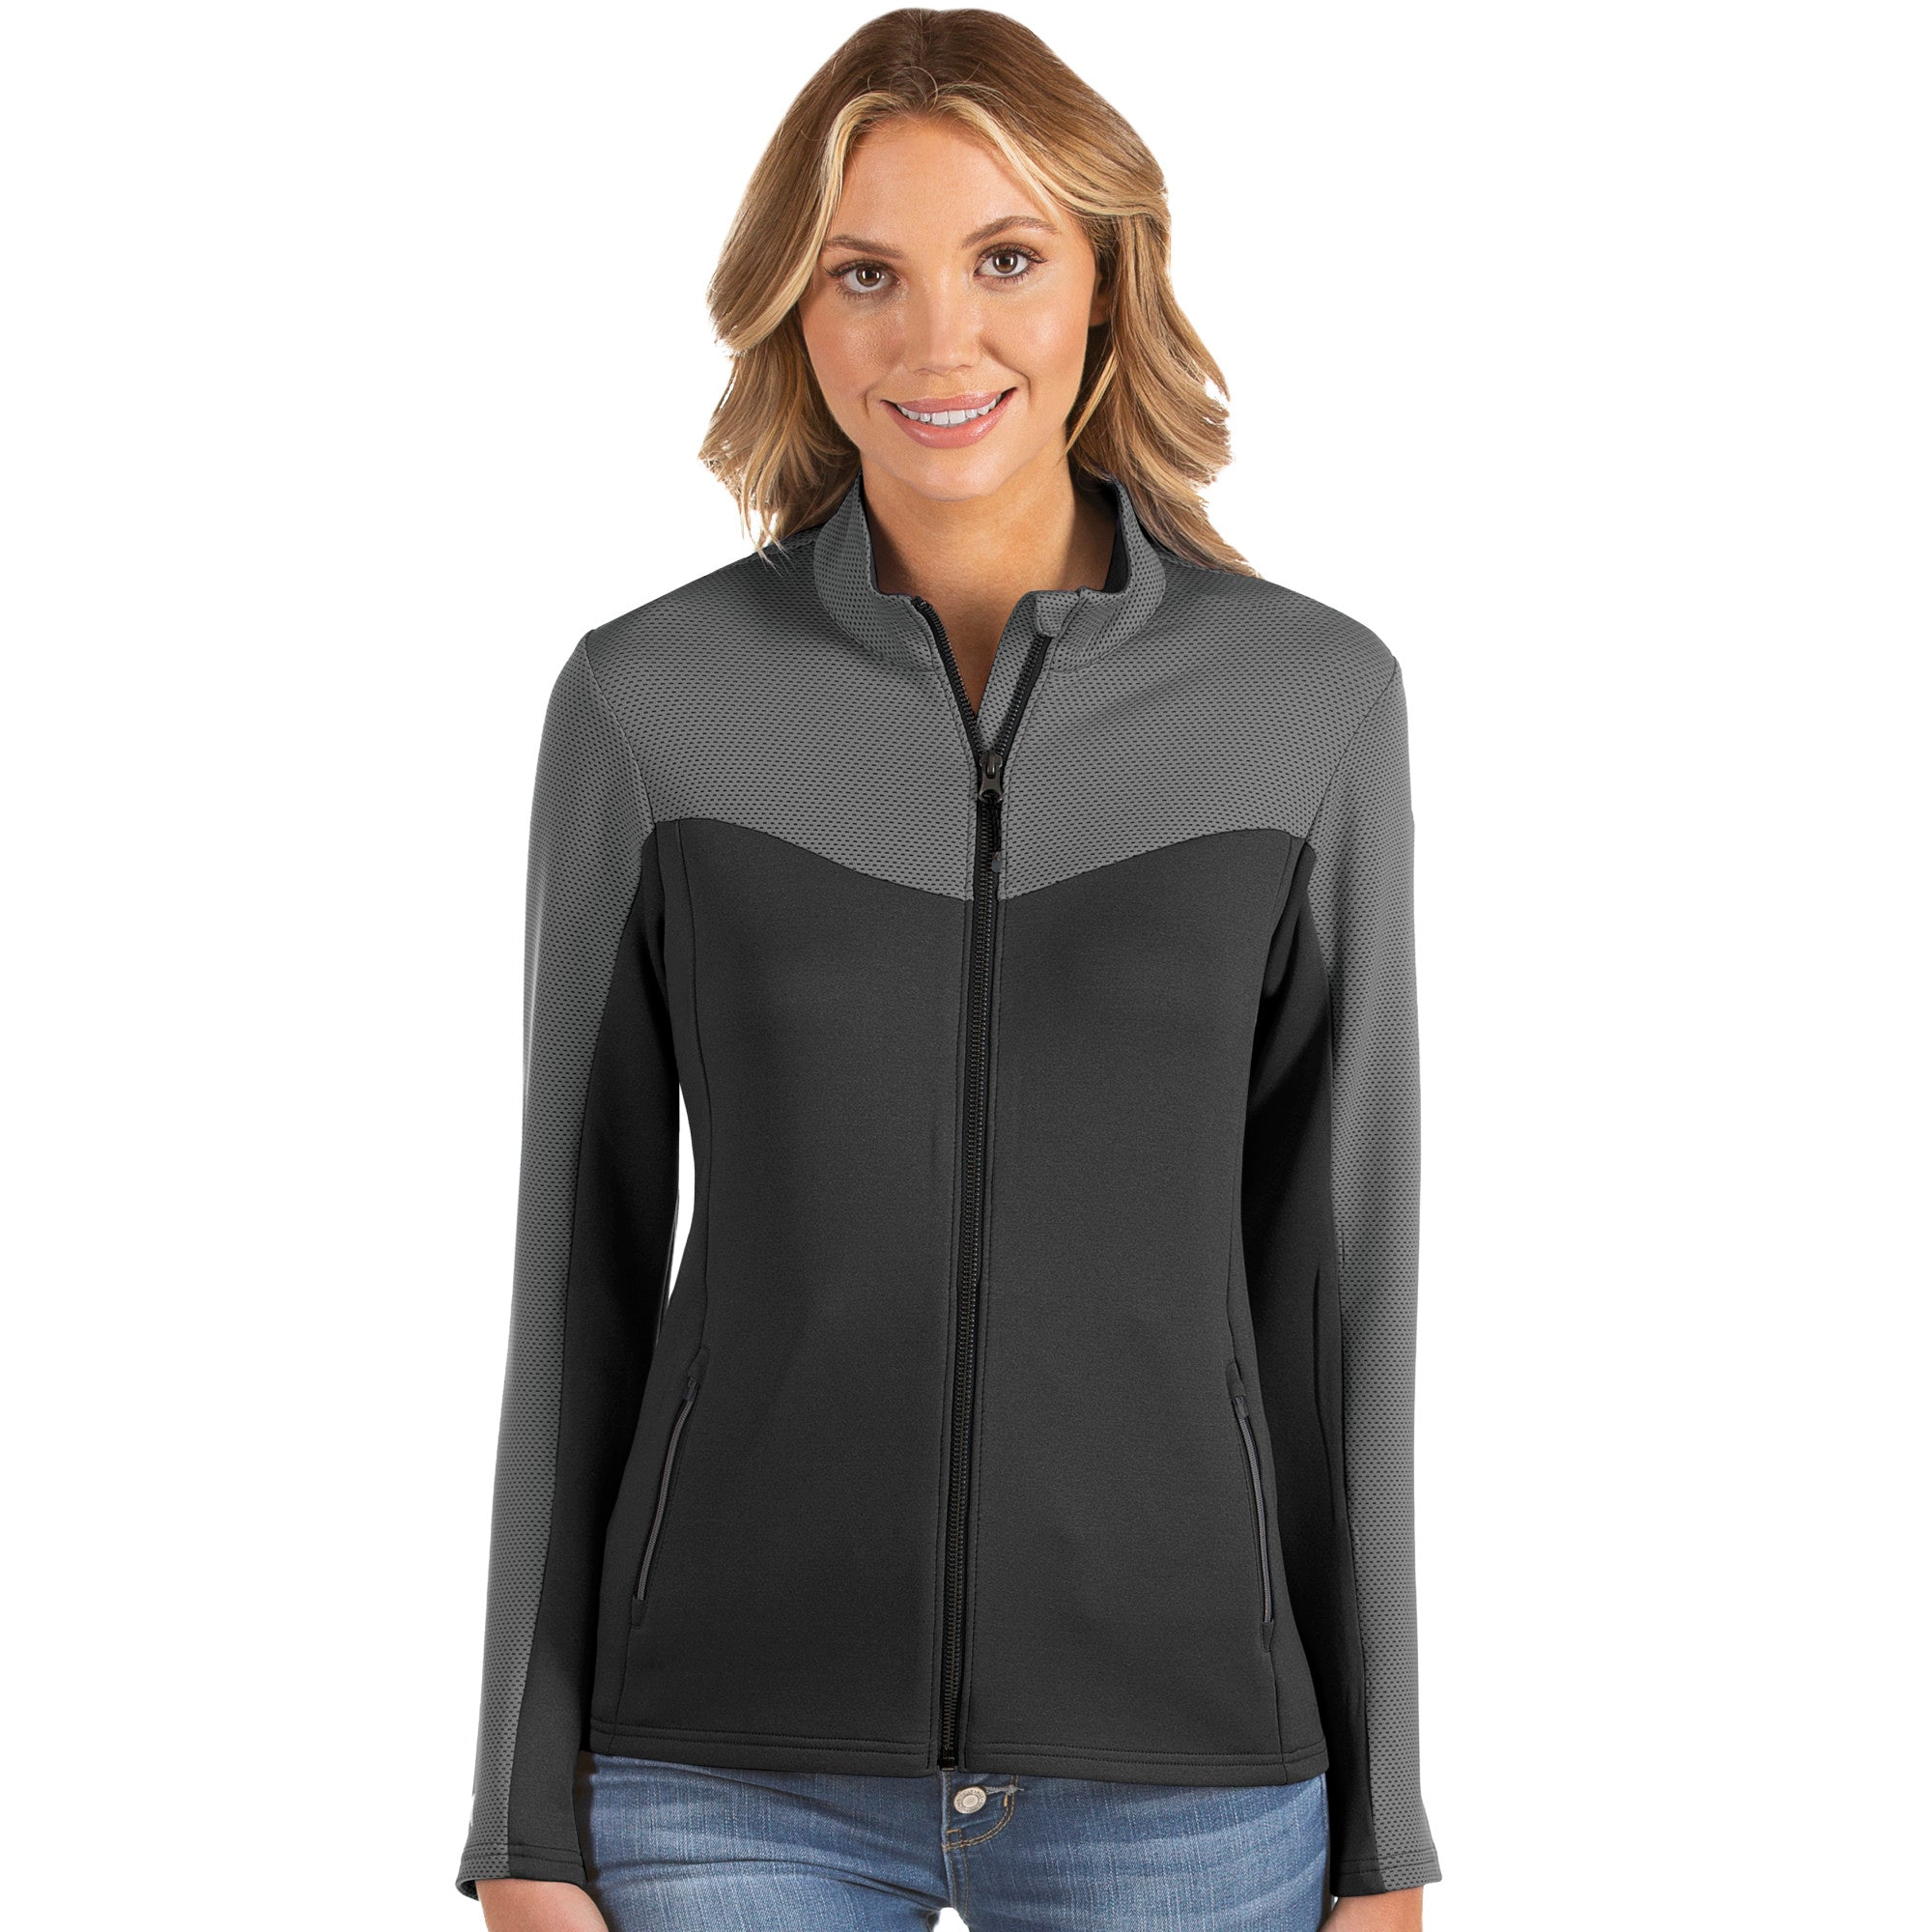 Antigua Women's Ideal Jacket - A104316